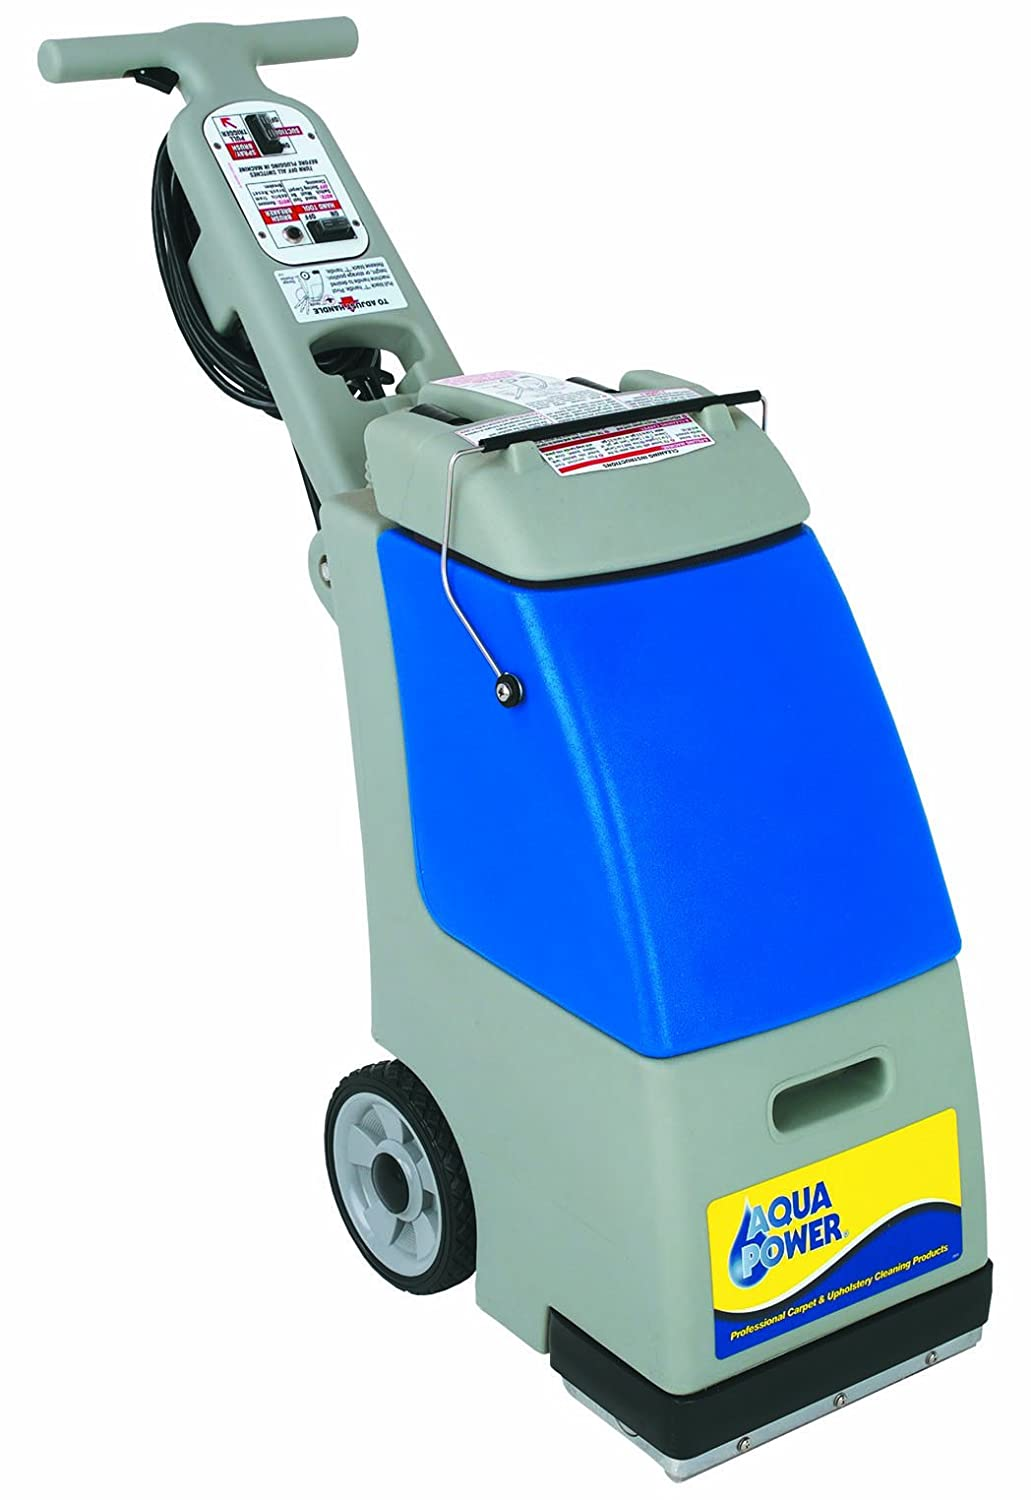 Professional Carpet Steam Cleaning Equipment Lets See